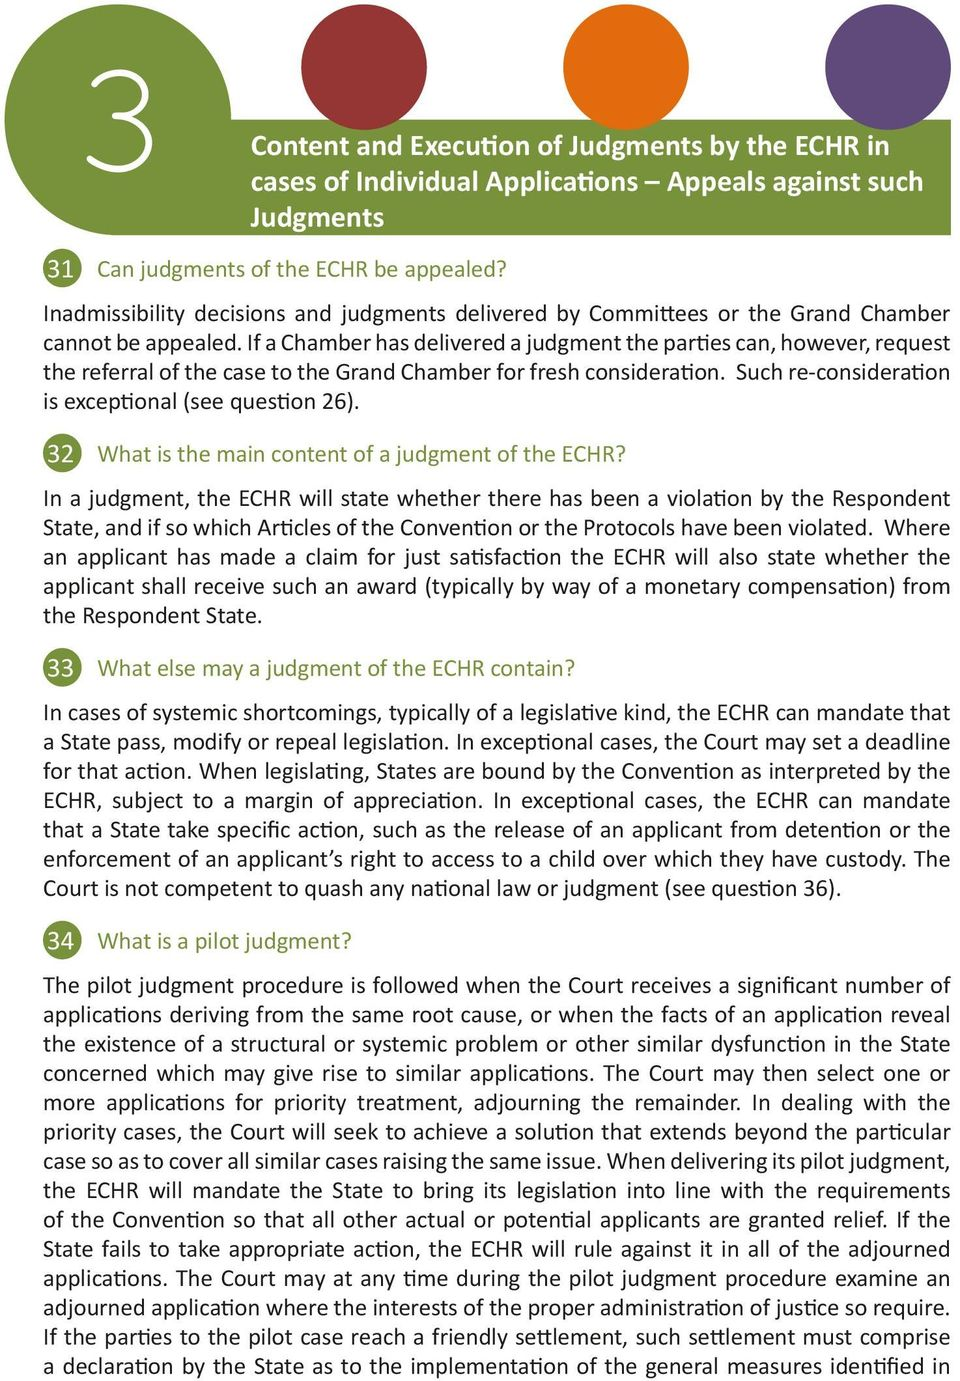 What is the main content of a judgment of the ECHR?